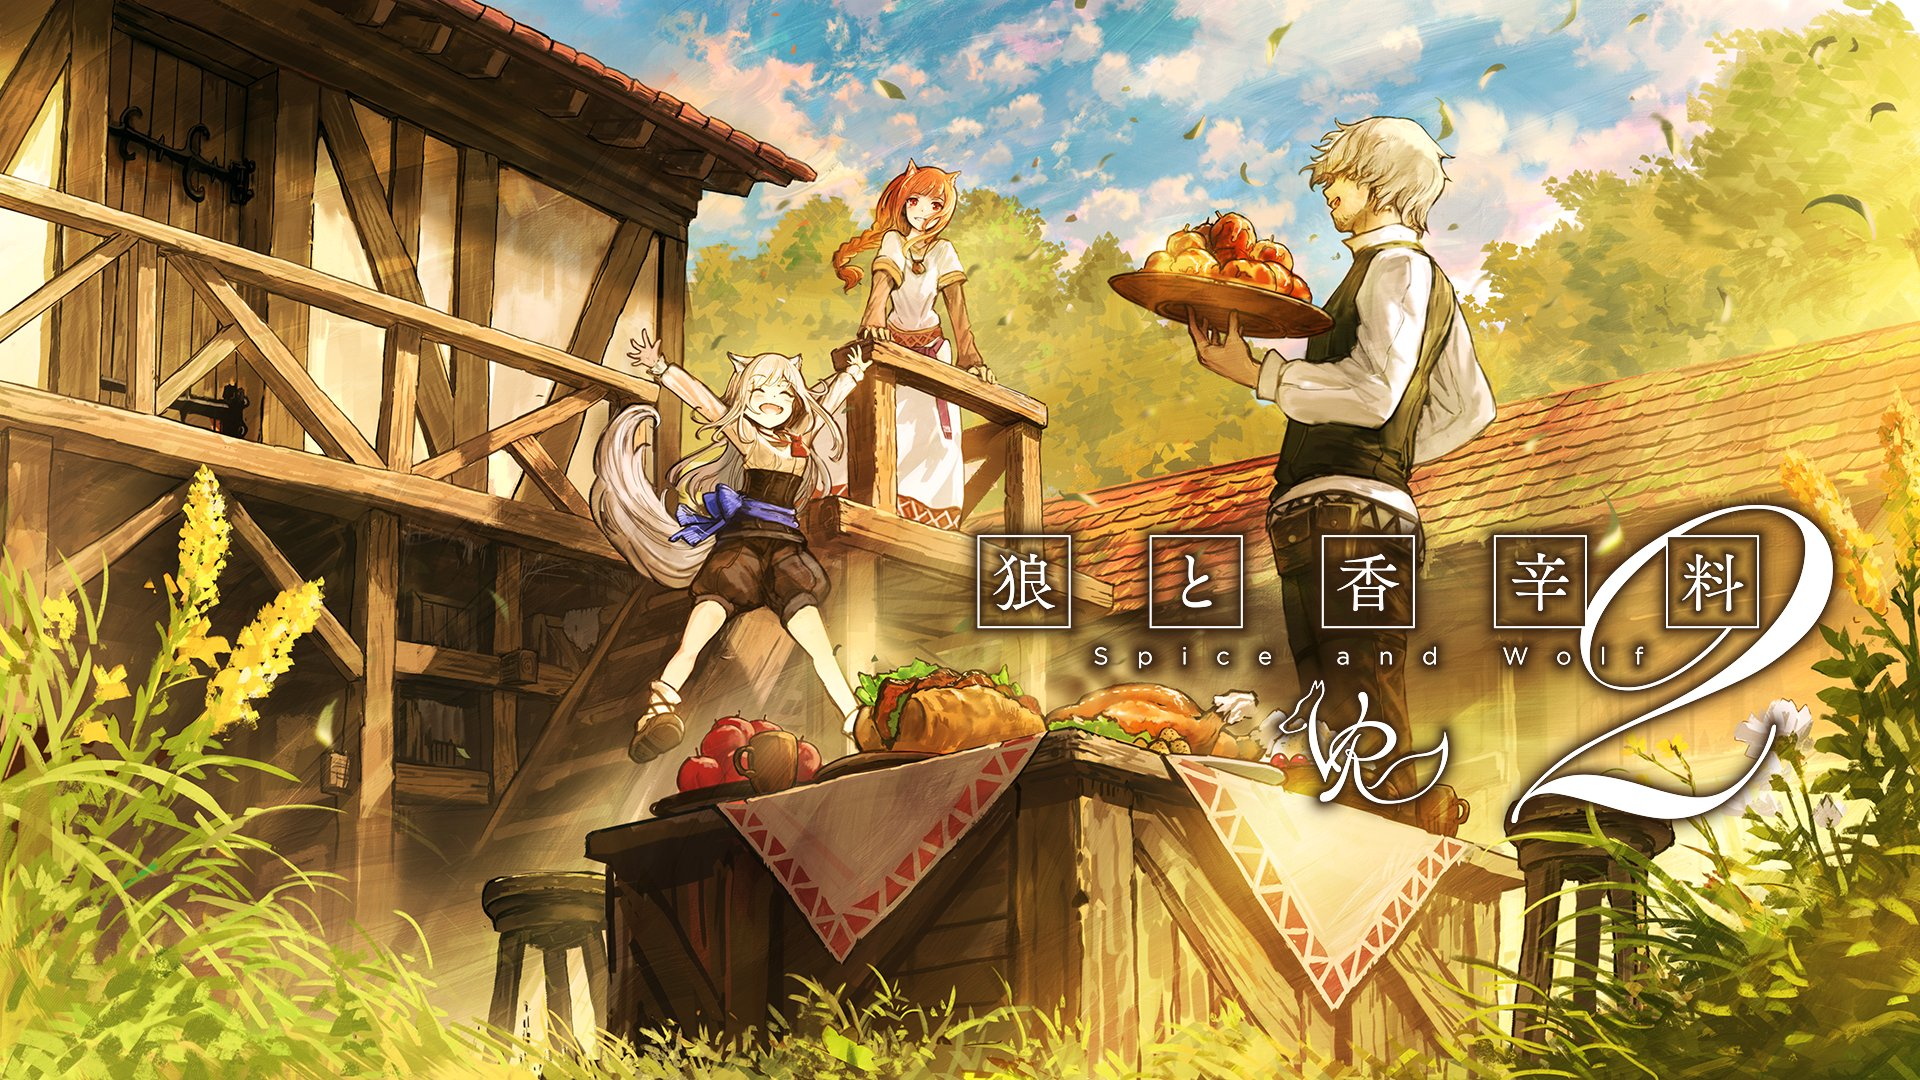 spice and wolf vr 2 game wallpaper 73558